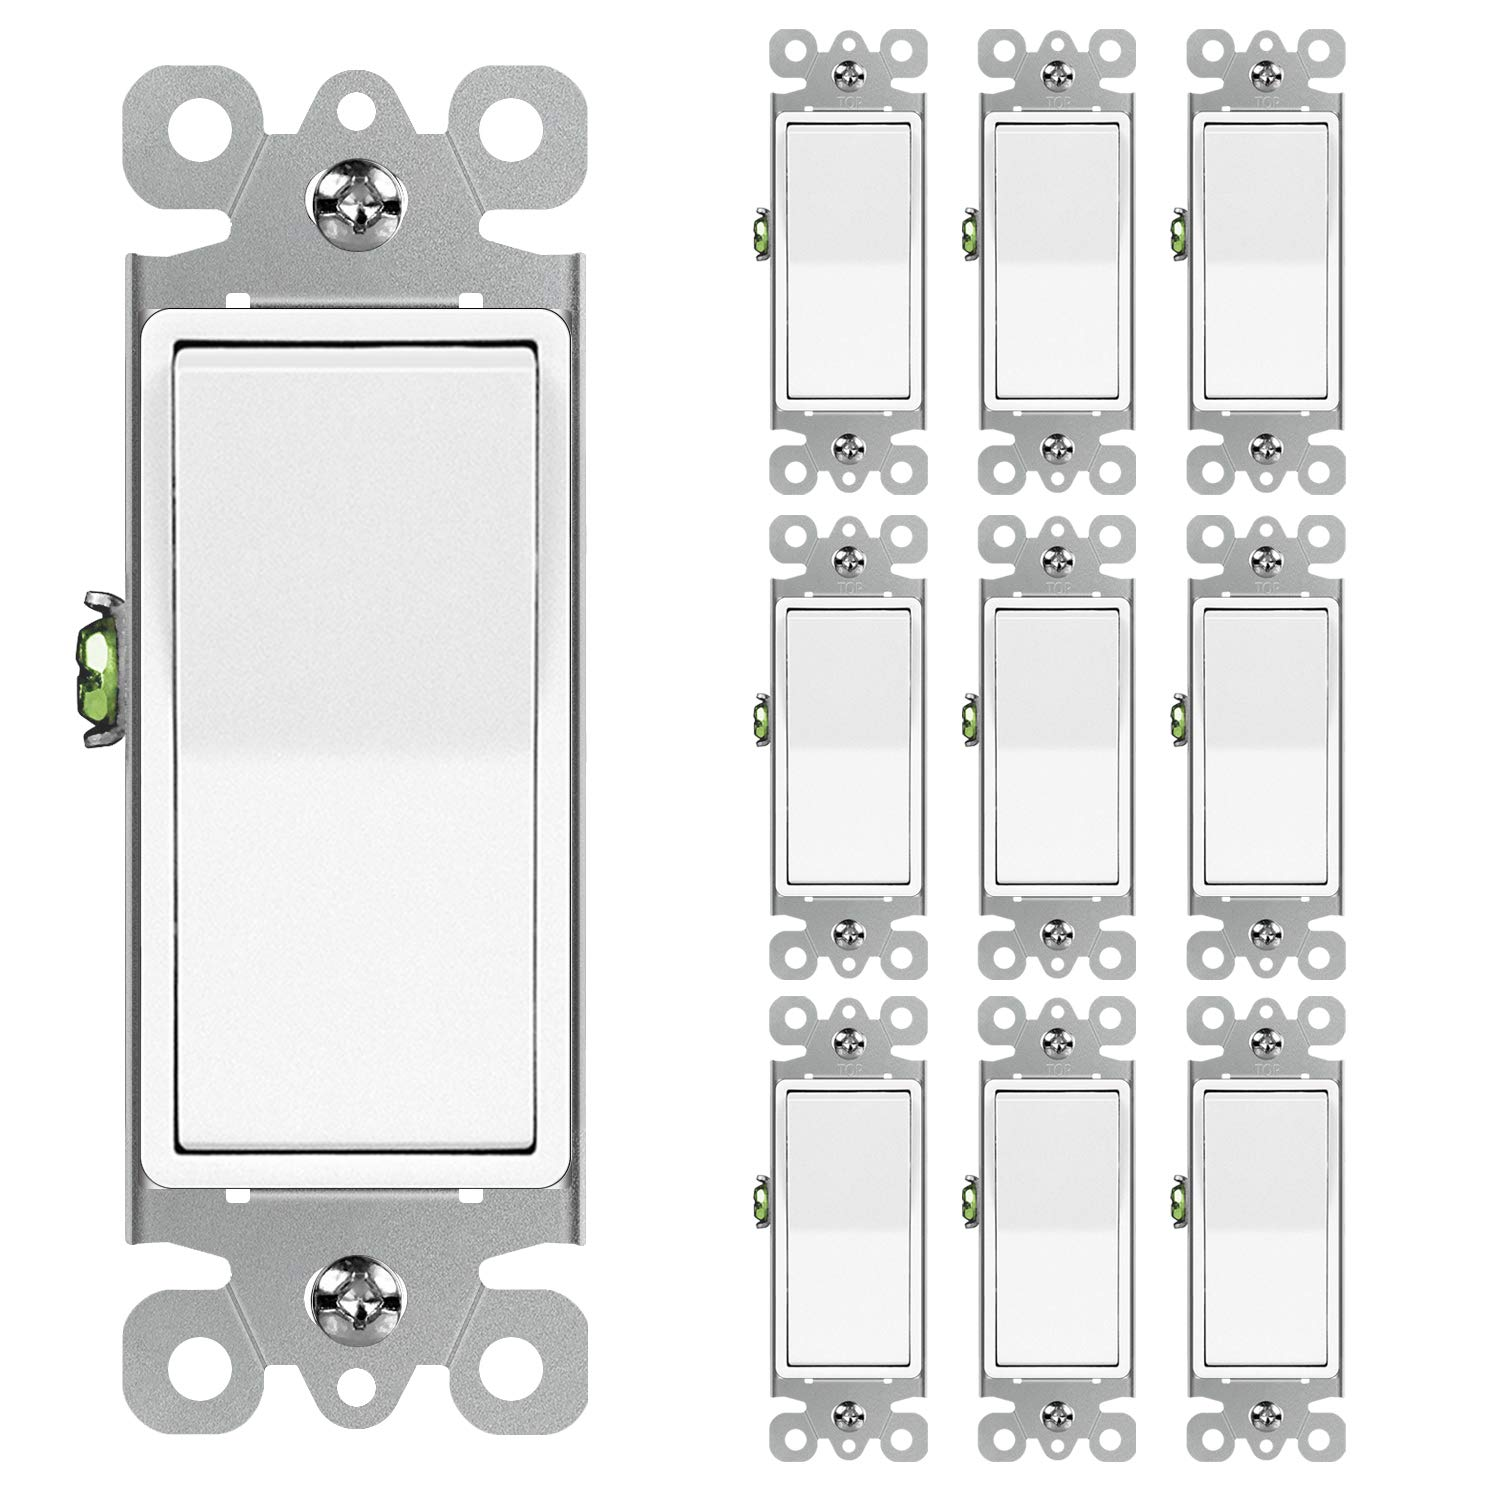 10 Pack All stores are sold Max 69% OFF BESTTEN Single-Pole Decorator Switch Wall Light 1 15A